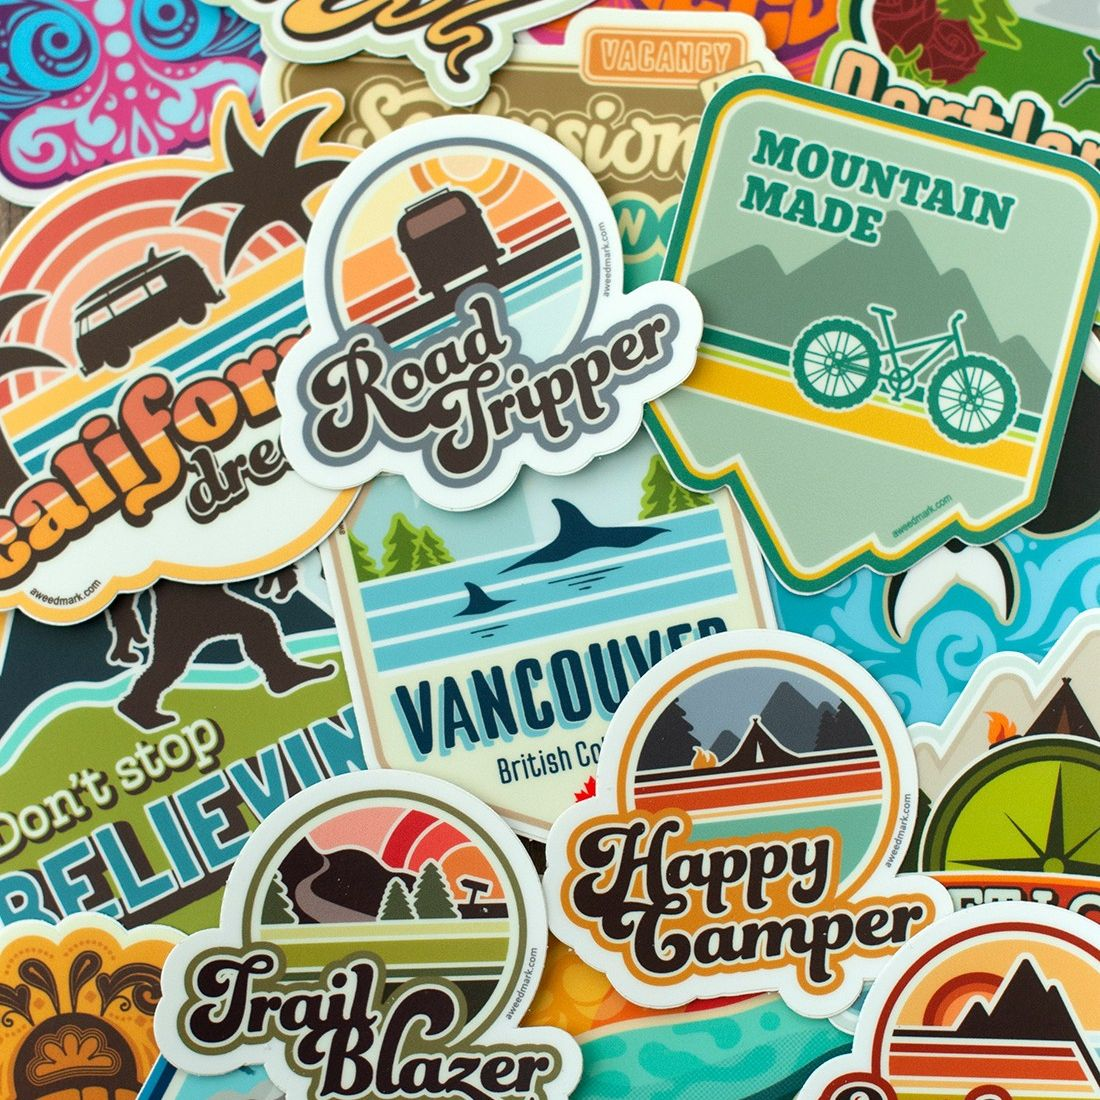 Celebrate national sticker day with some funky retro stickers